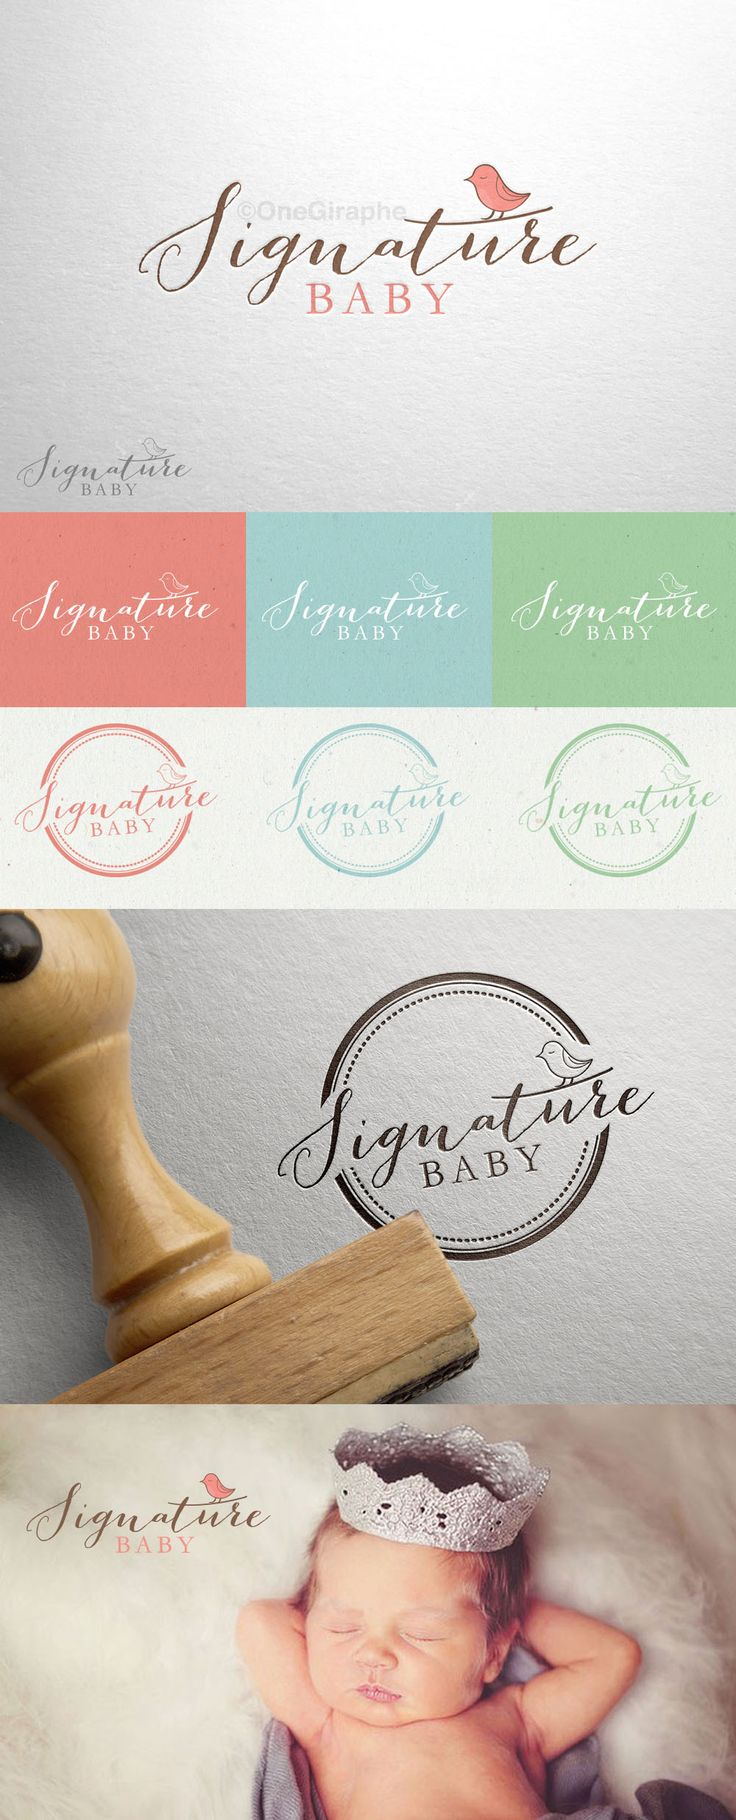 Signature Baby - for SALE!  Order at: onegiraphe@gmail.com Logo ( Black & White - logo variation can be used as watermark, stamp, gold / silver print , car branded , etc ) + Mini Logo / Badge or Signature if need ( Color Variations )  Format files: eps, pdf, png, jpg or any other at request. Customisable Fonts and Colors www.One-Giraphe.com #logo #logodesign #design #brandidentity #needlogo #designer #graphic #graphicdesign #photography #baby #babycompany #bird